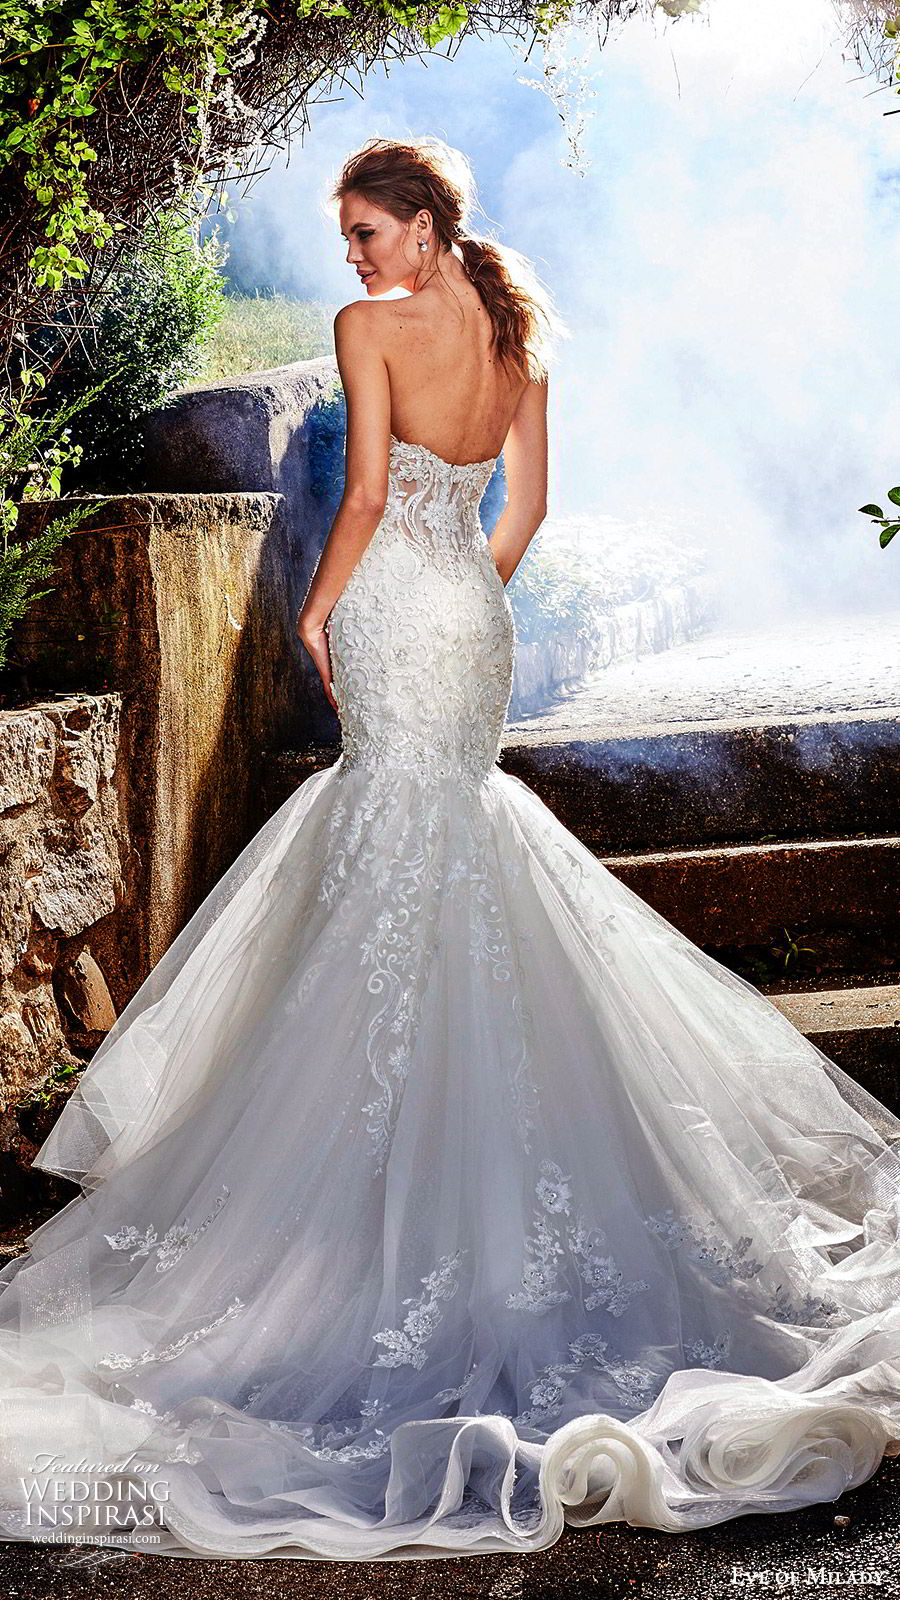 eve of milady fall 2018 bridal strapless sweetheart fully embellished mermaid lace wedding dress sheer back cathedral train elegant romantic (9) bv